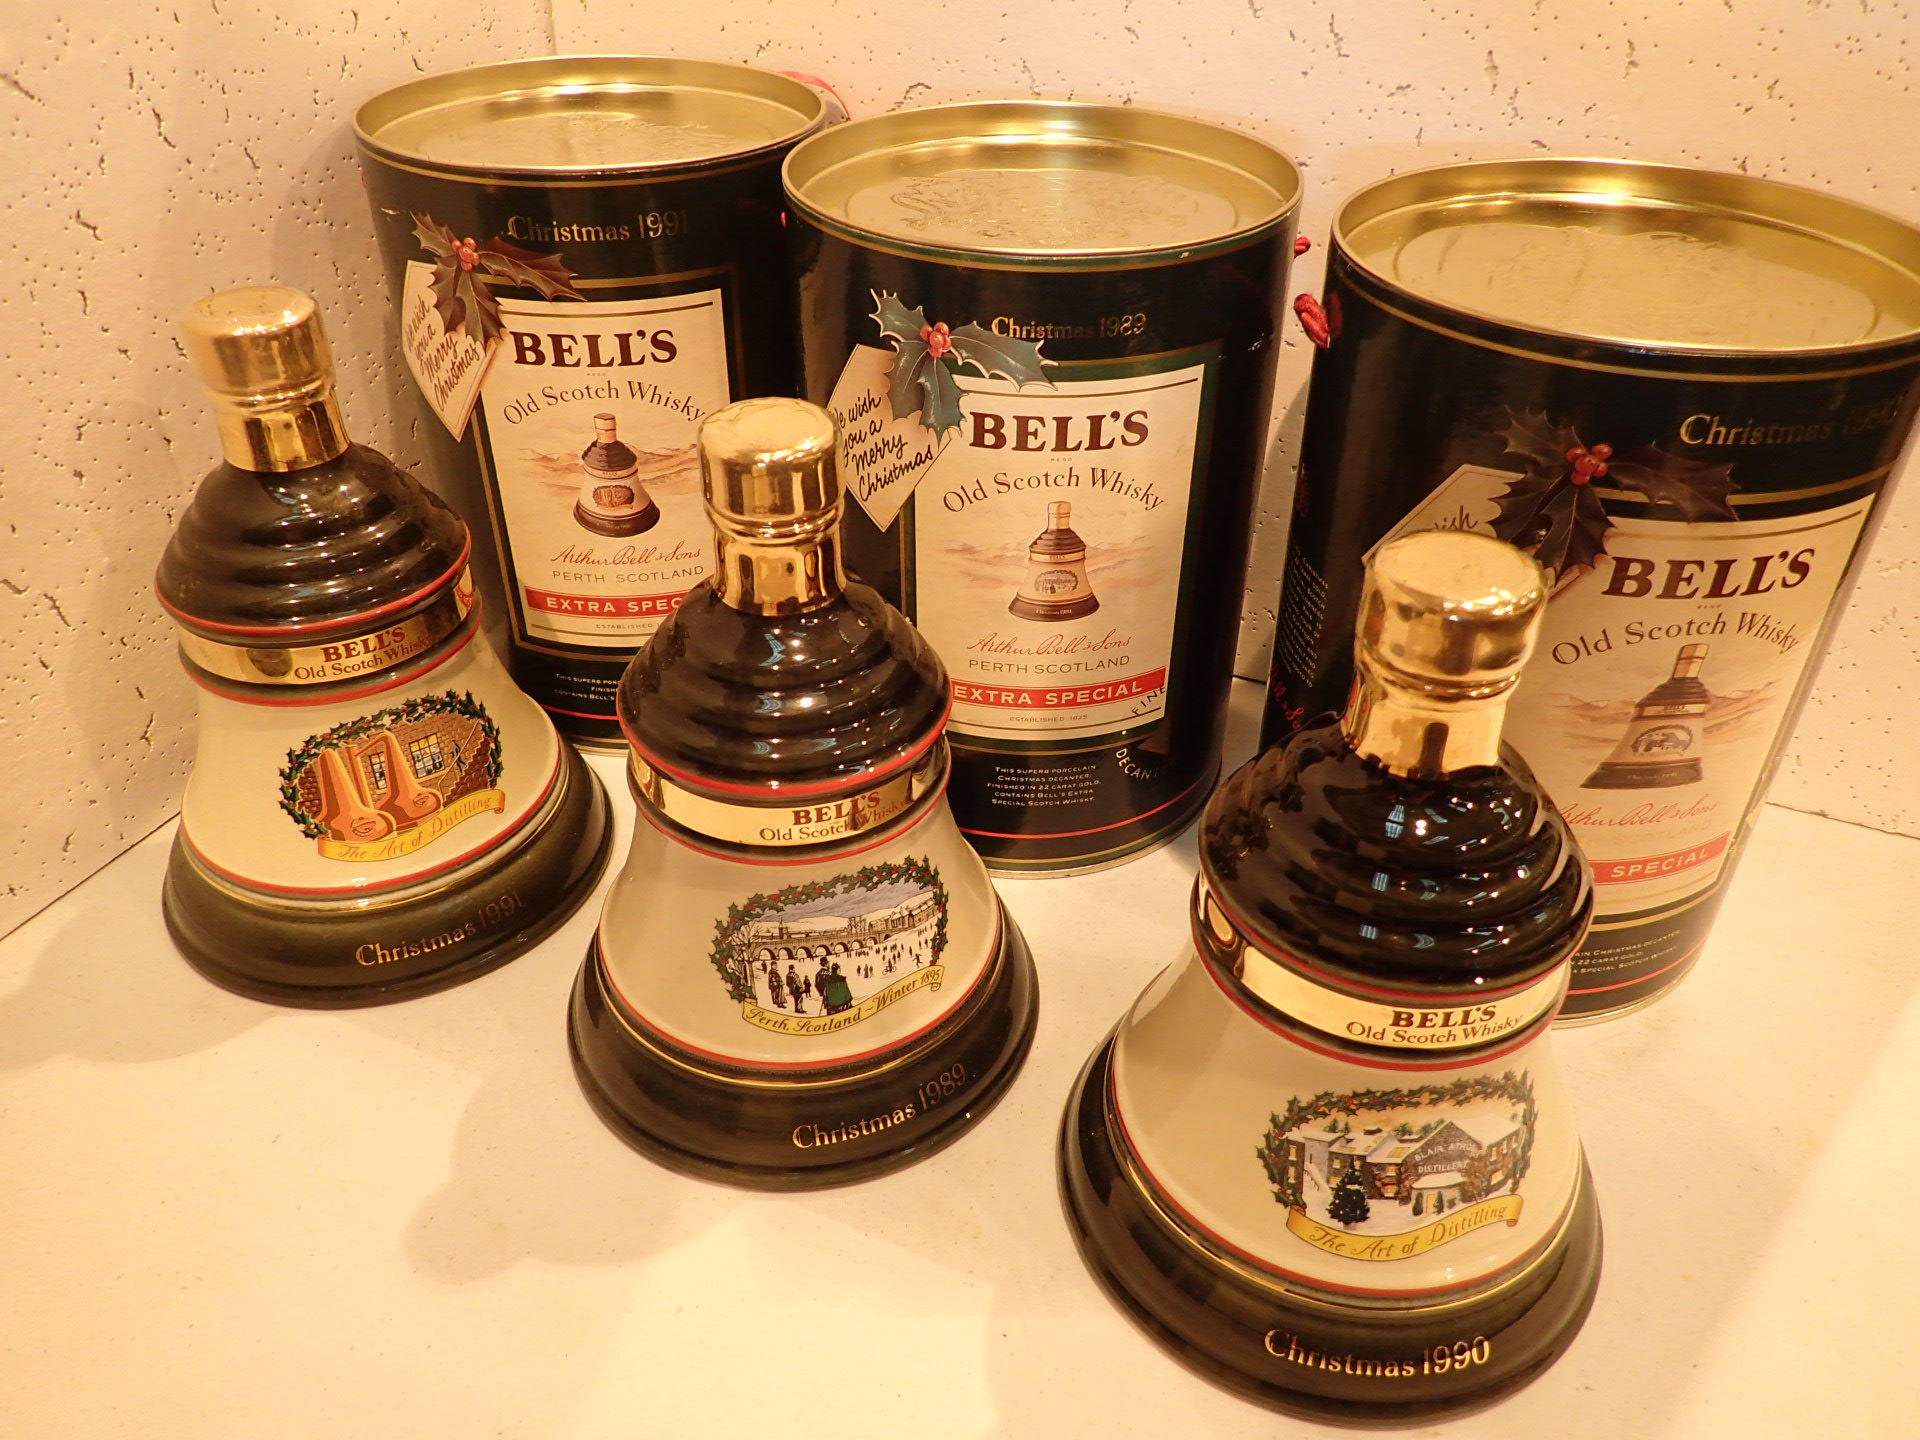 Lot 533 - Three Bells whisky decanters Christmas 1